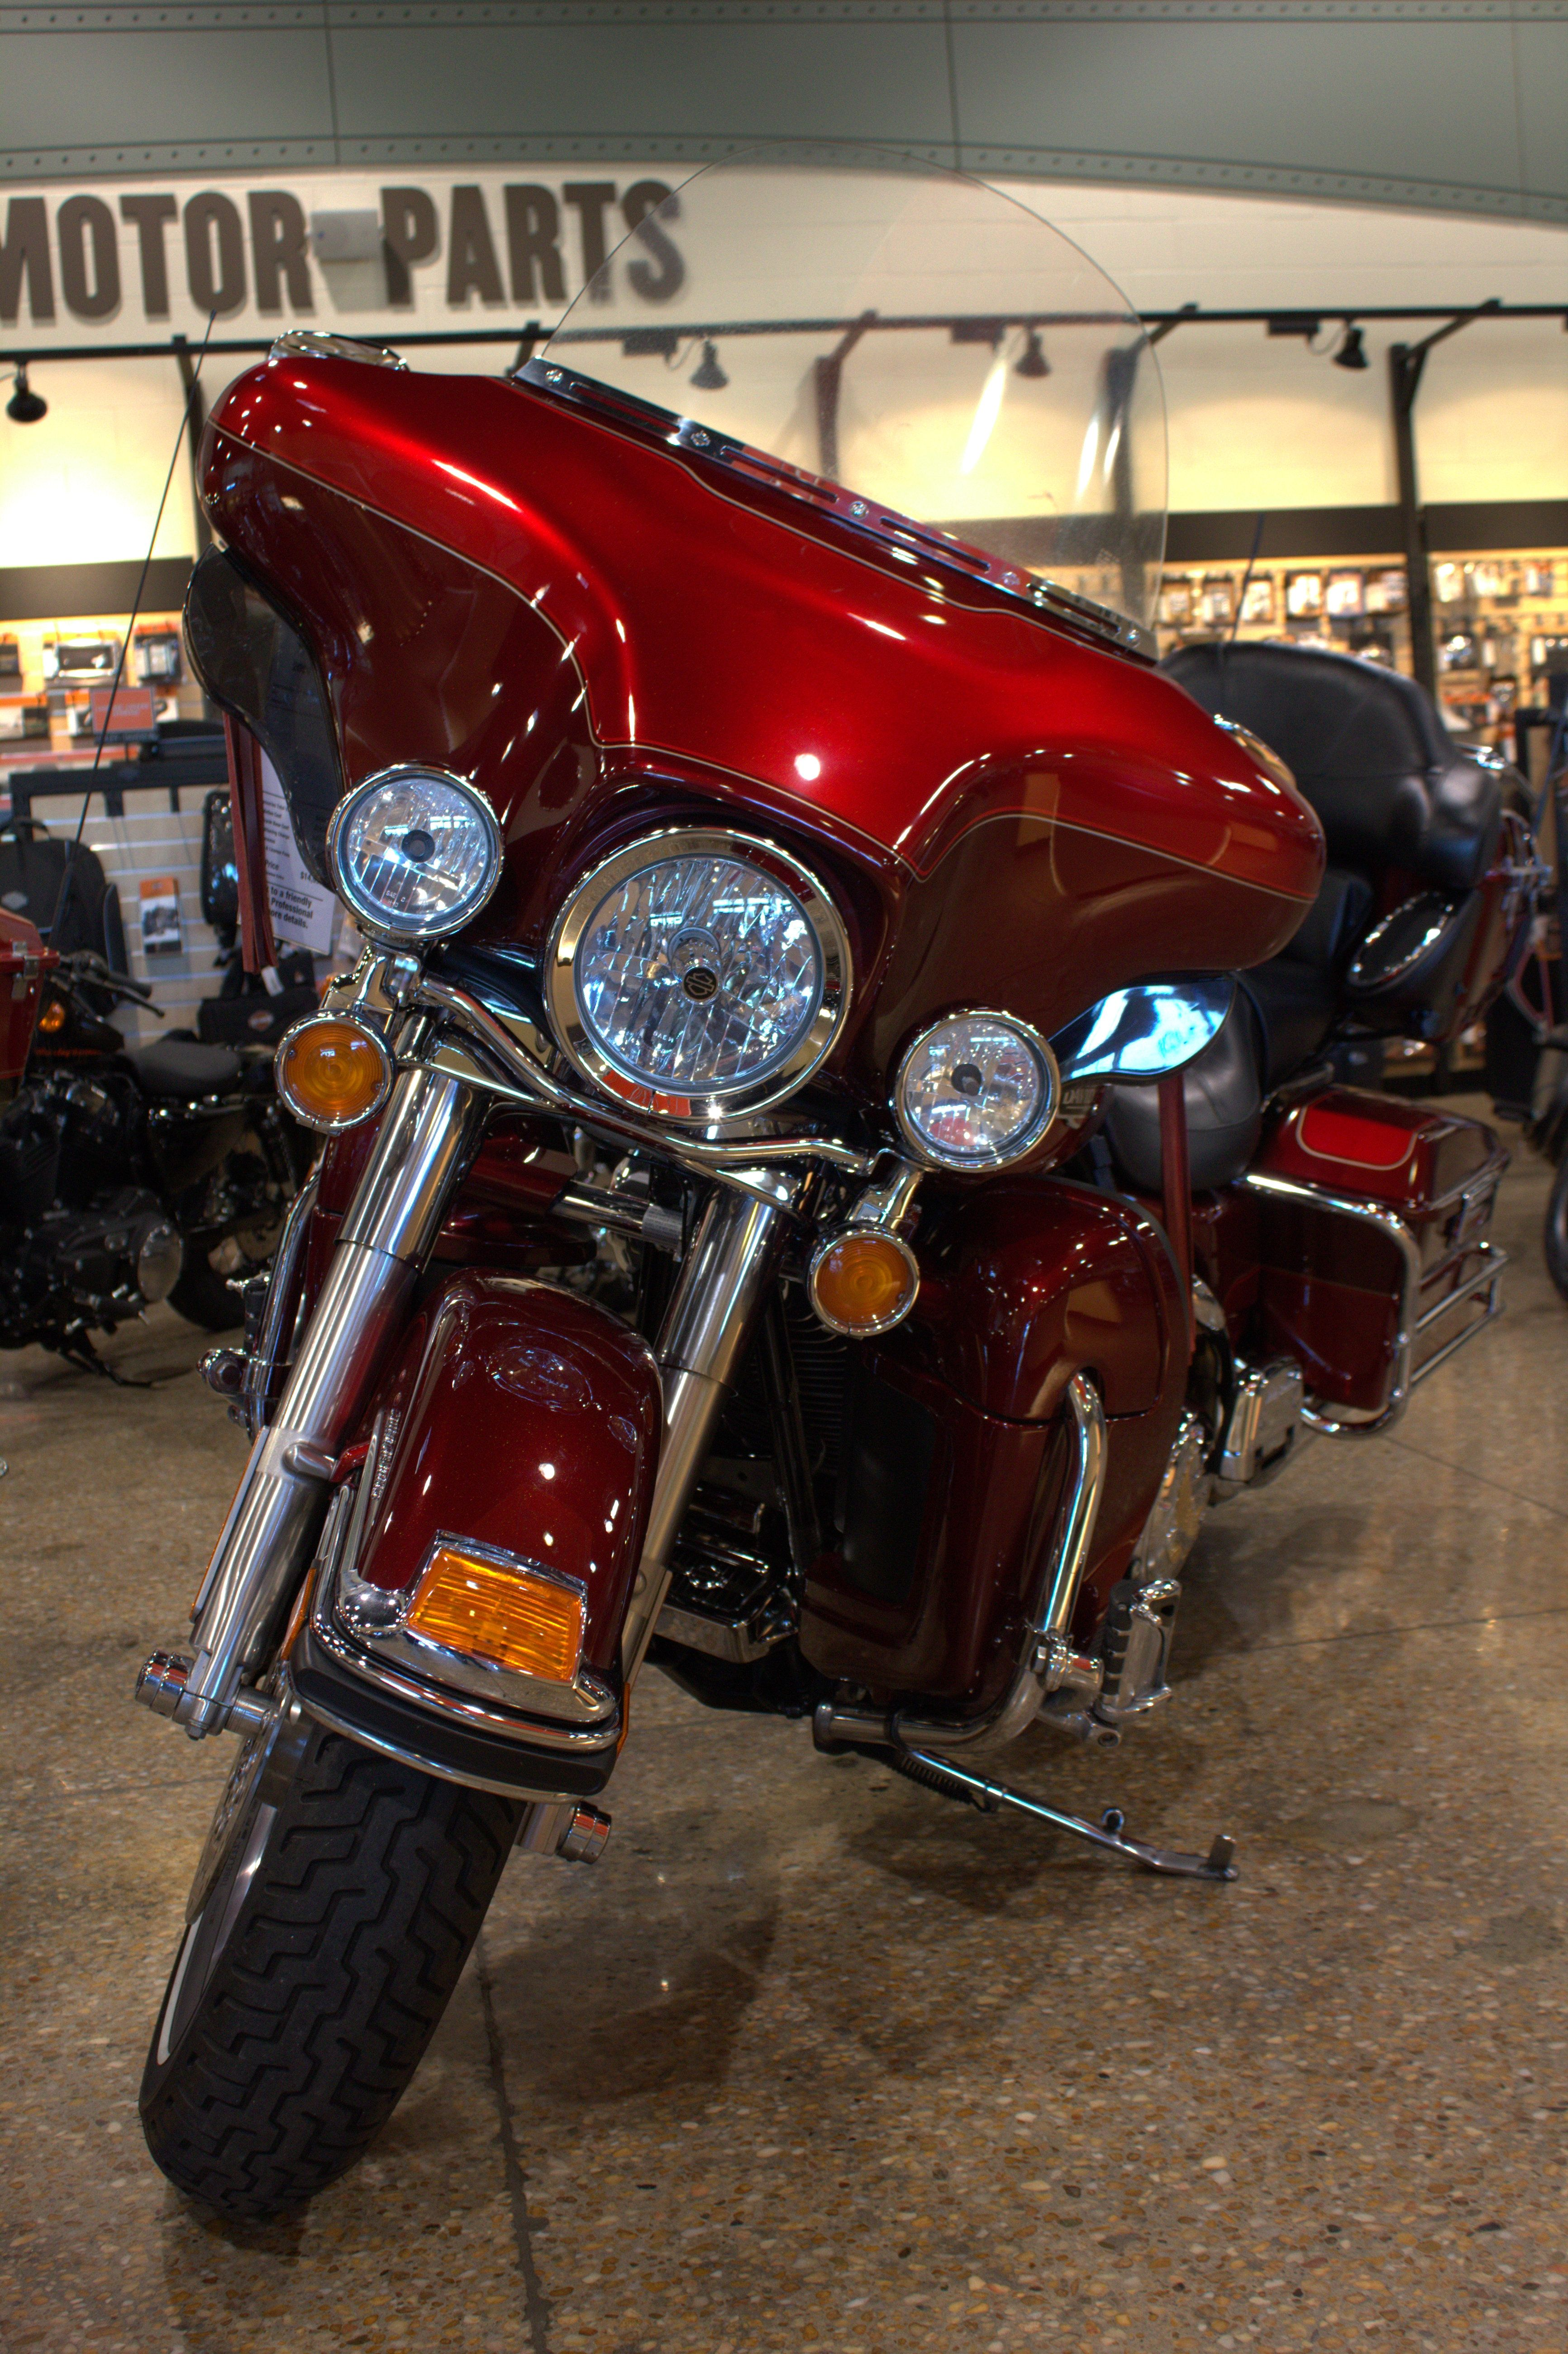 2008 Flhtcu In Crimson Red Sunglo Red Hot Sunglo This Baby Comes With Stage 1 Rinehart Pipes Headl Harley Davidson Electra Glide Trim Ring Harley Davidson [ 5202 x 3465 Pixel ]